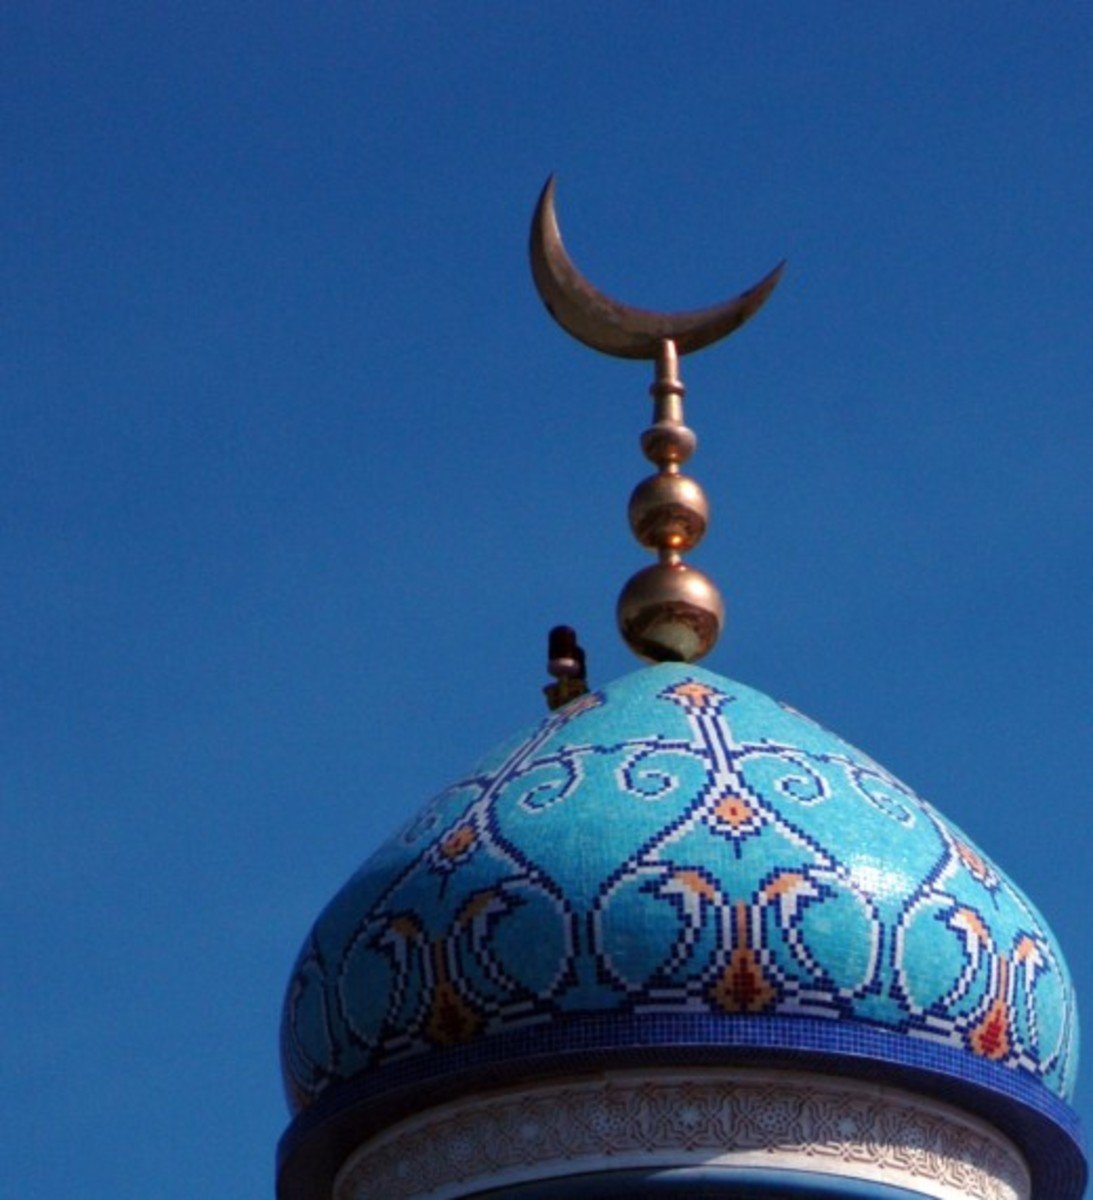 The mosque is the place of worship for the Muslim people, they are peaceful pretty places for the people to pray to their God Allah.